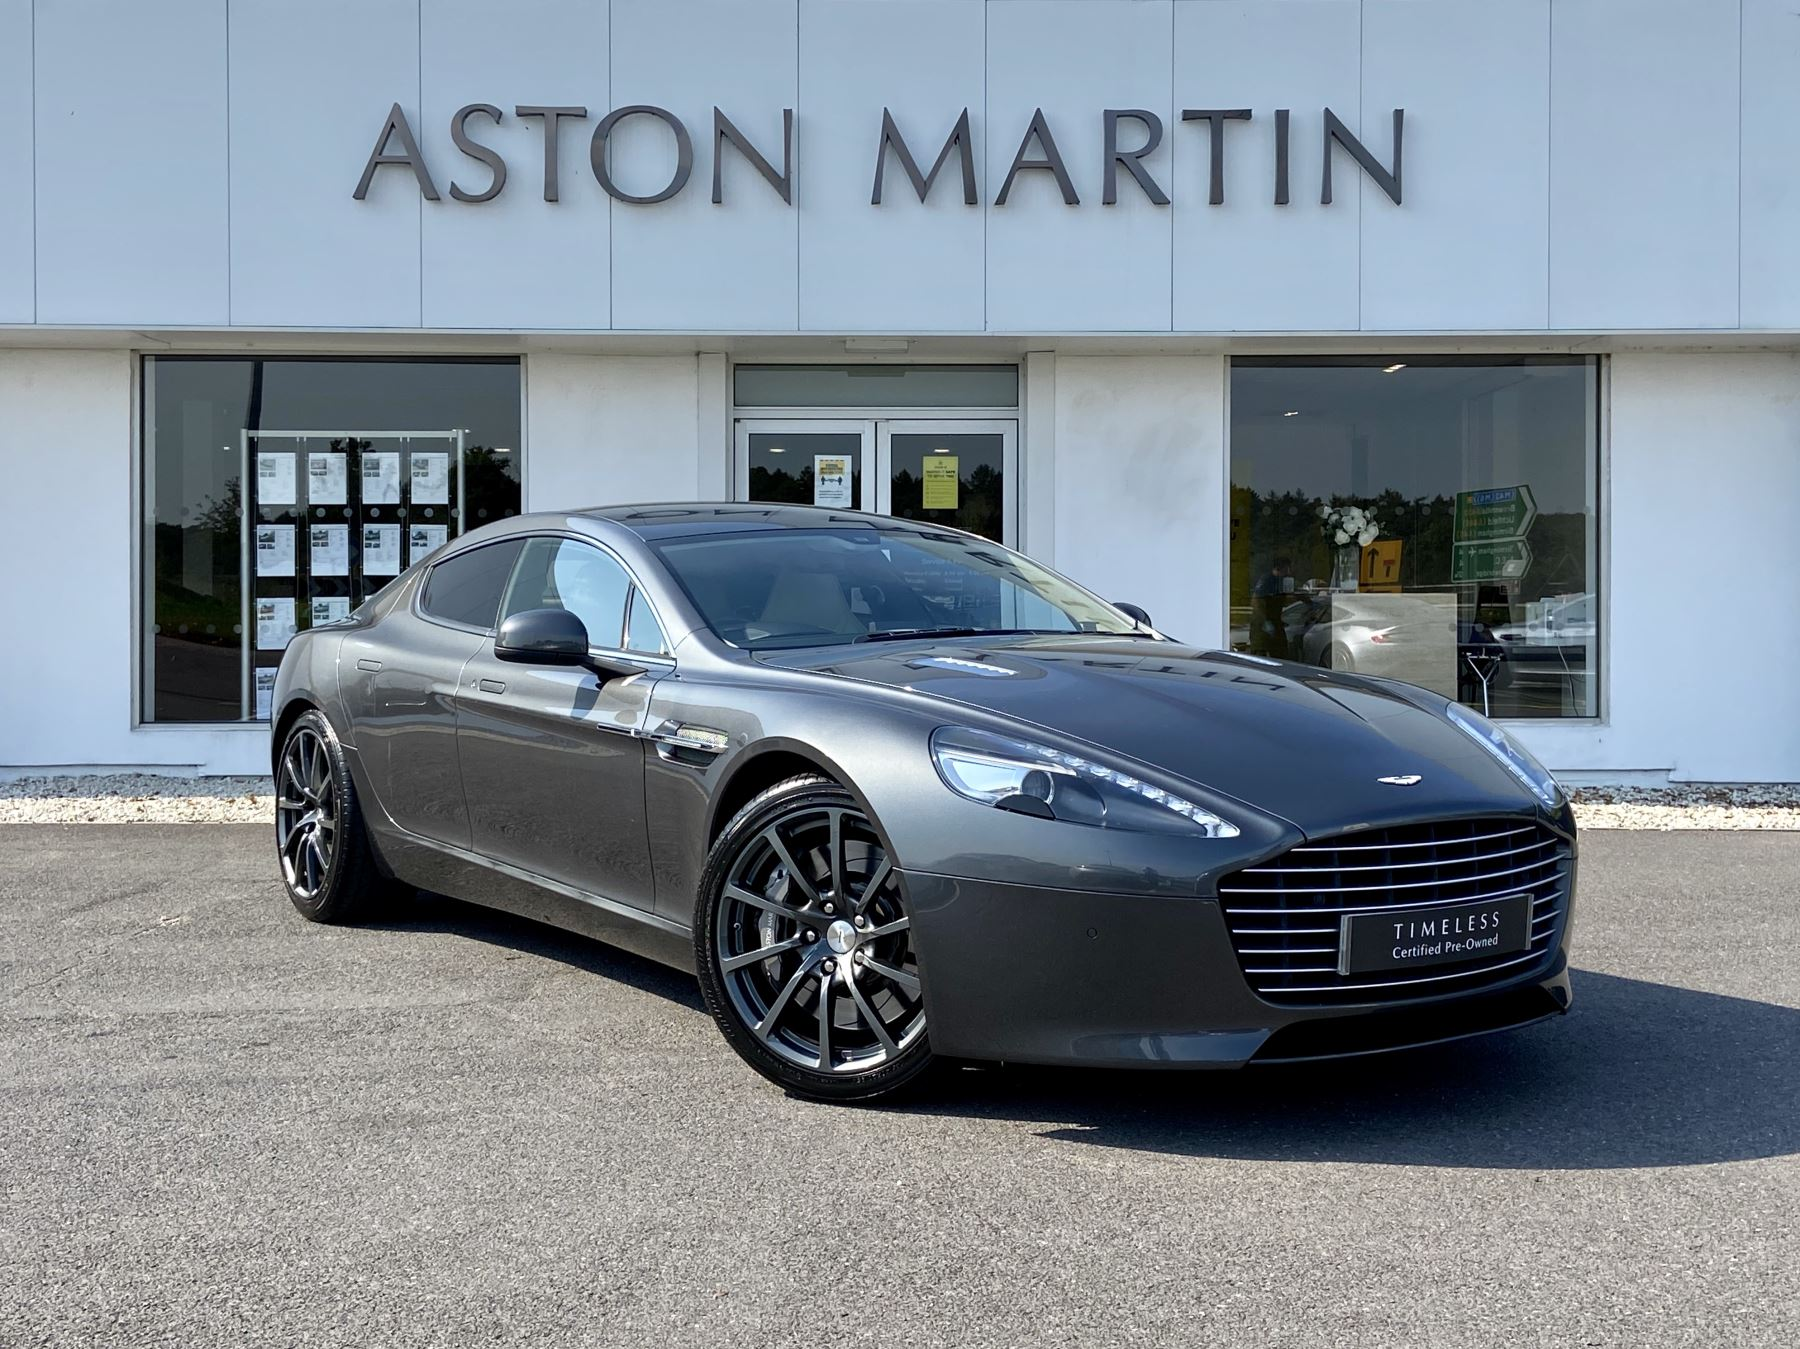 Aston Martin Rapide S V12 [552] 4dr Touchtronic III 5.9 Automatic 5 door Saloon (2015)